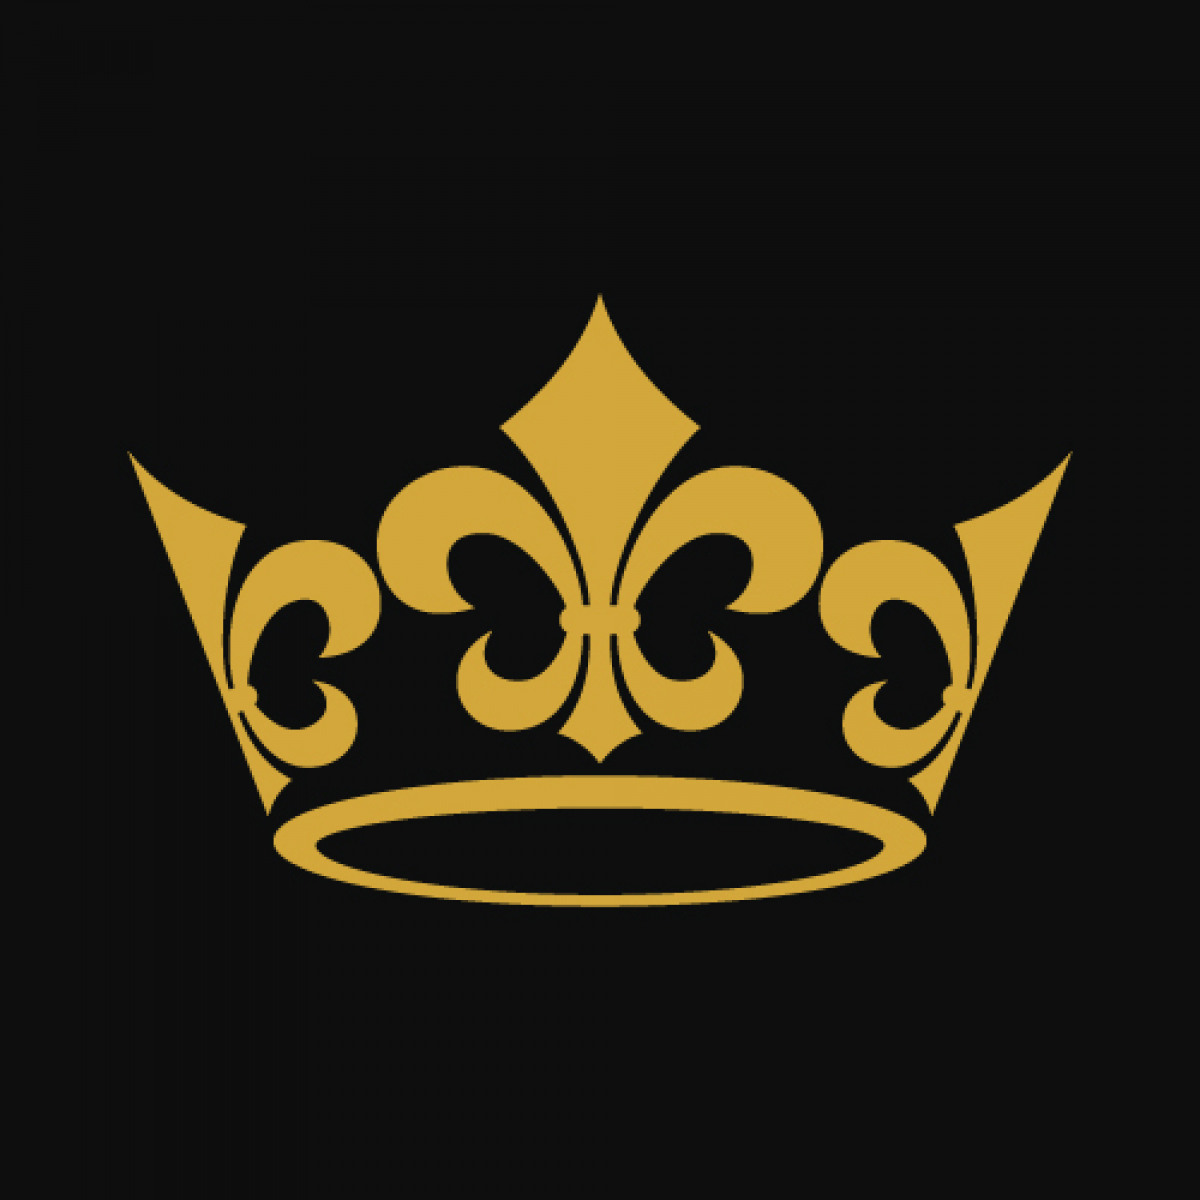 Zimbabwe 10 Trillion Dollar Note Tavex Sweden